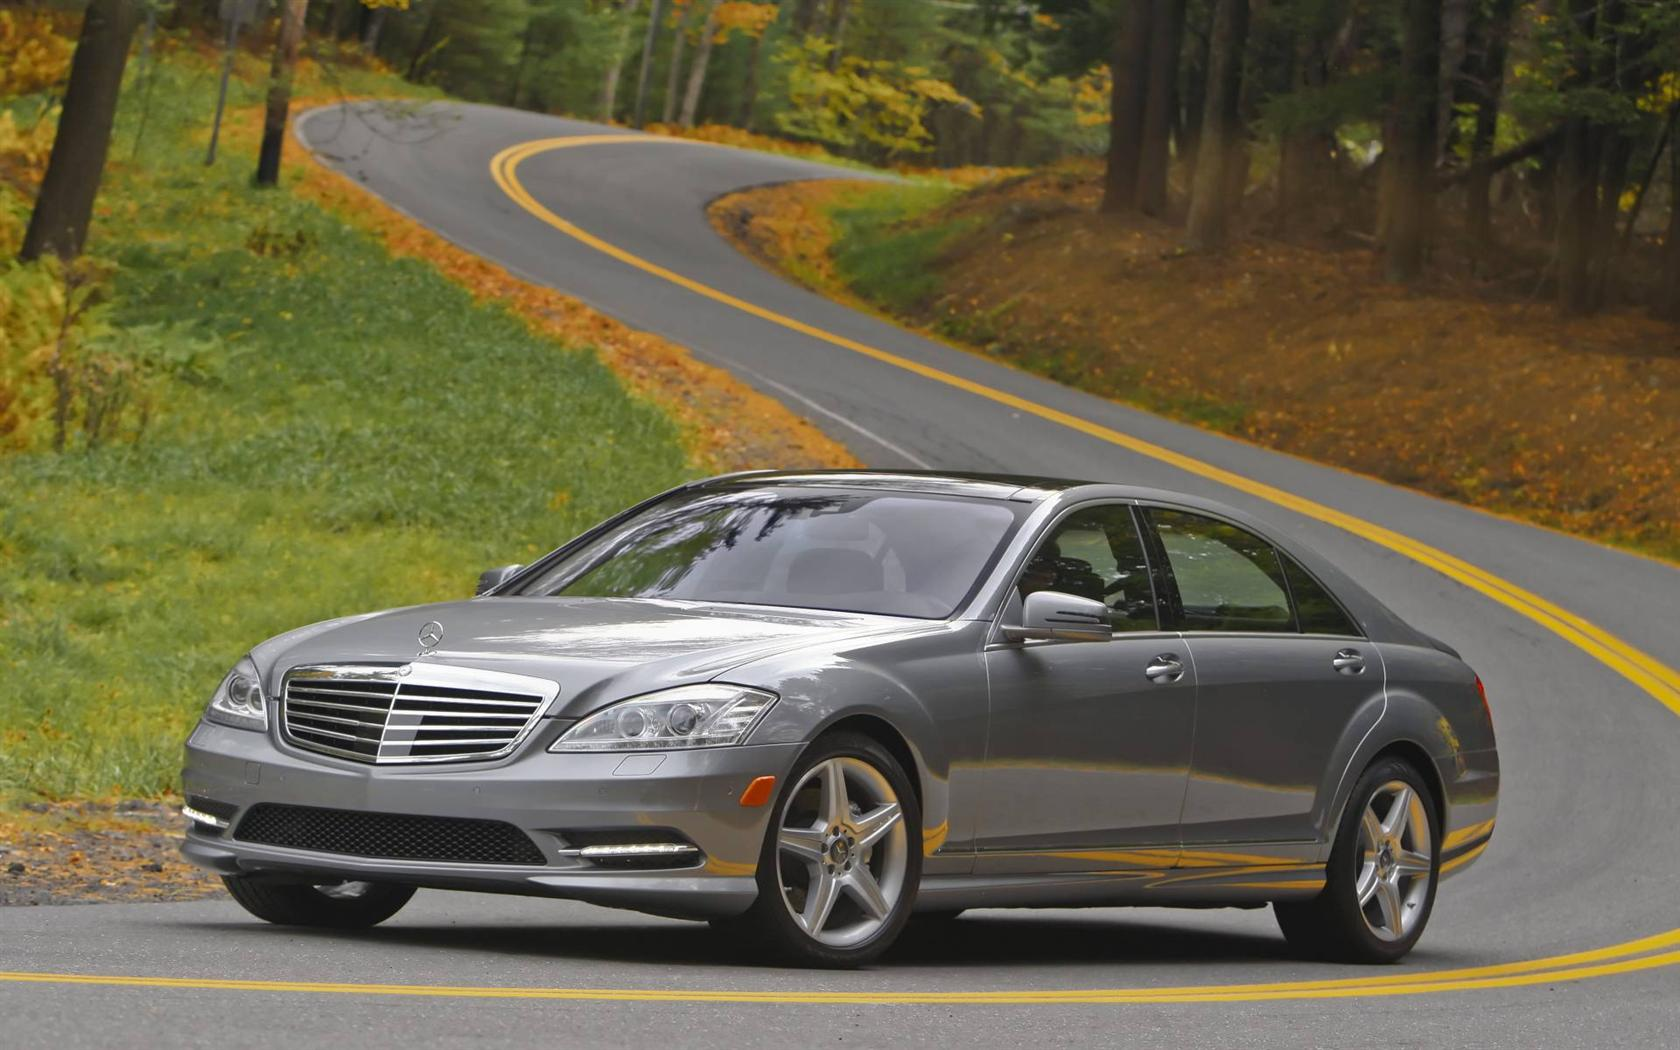 Mercedes benz s550 2013 review amazing pictures and for Mercedes benz sedan 2013